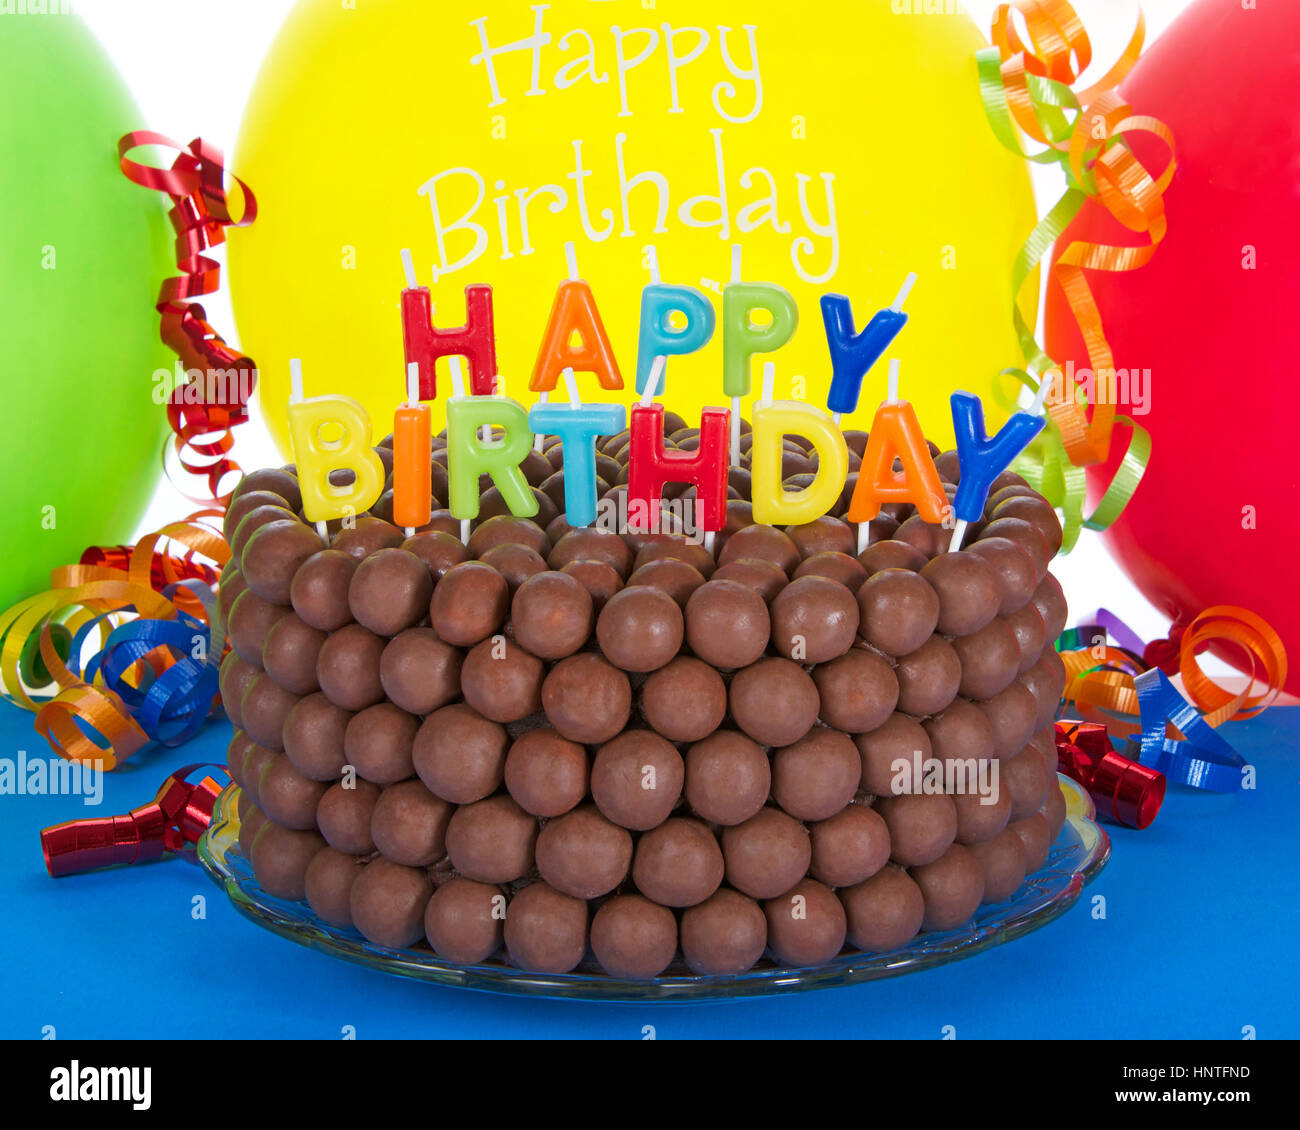 Fabulous Whopper Of A Chocolate Birthday Cake Decorated With Candy Malt Funny Birthday Cards Online Bapapcheapnameinfo